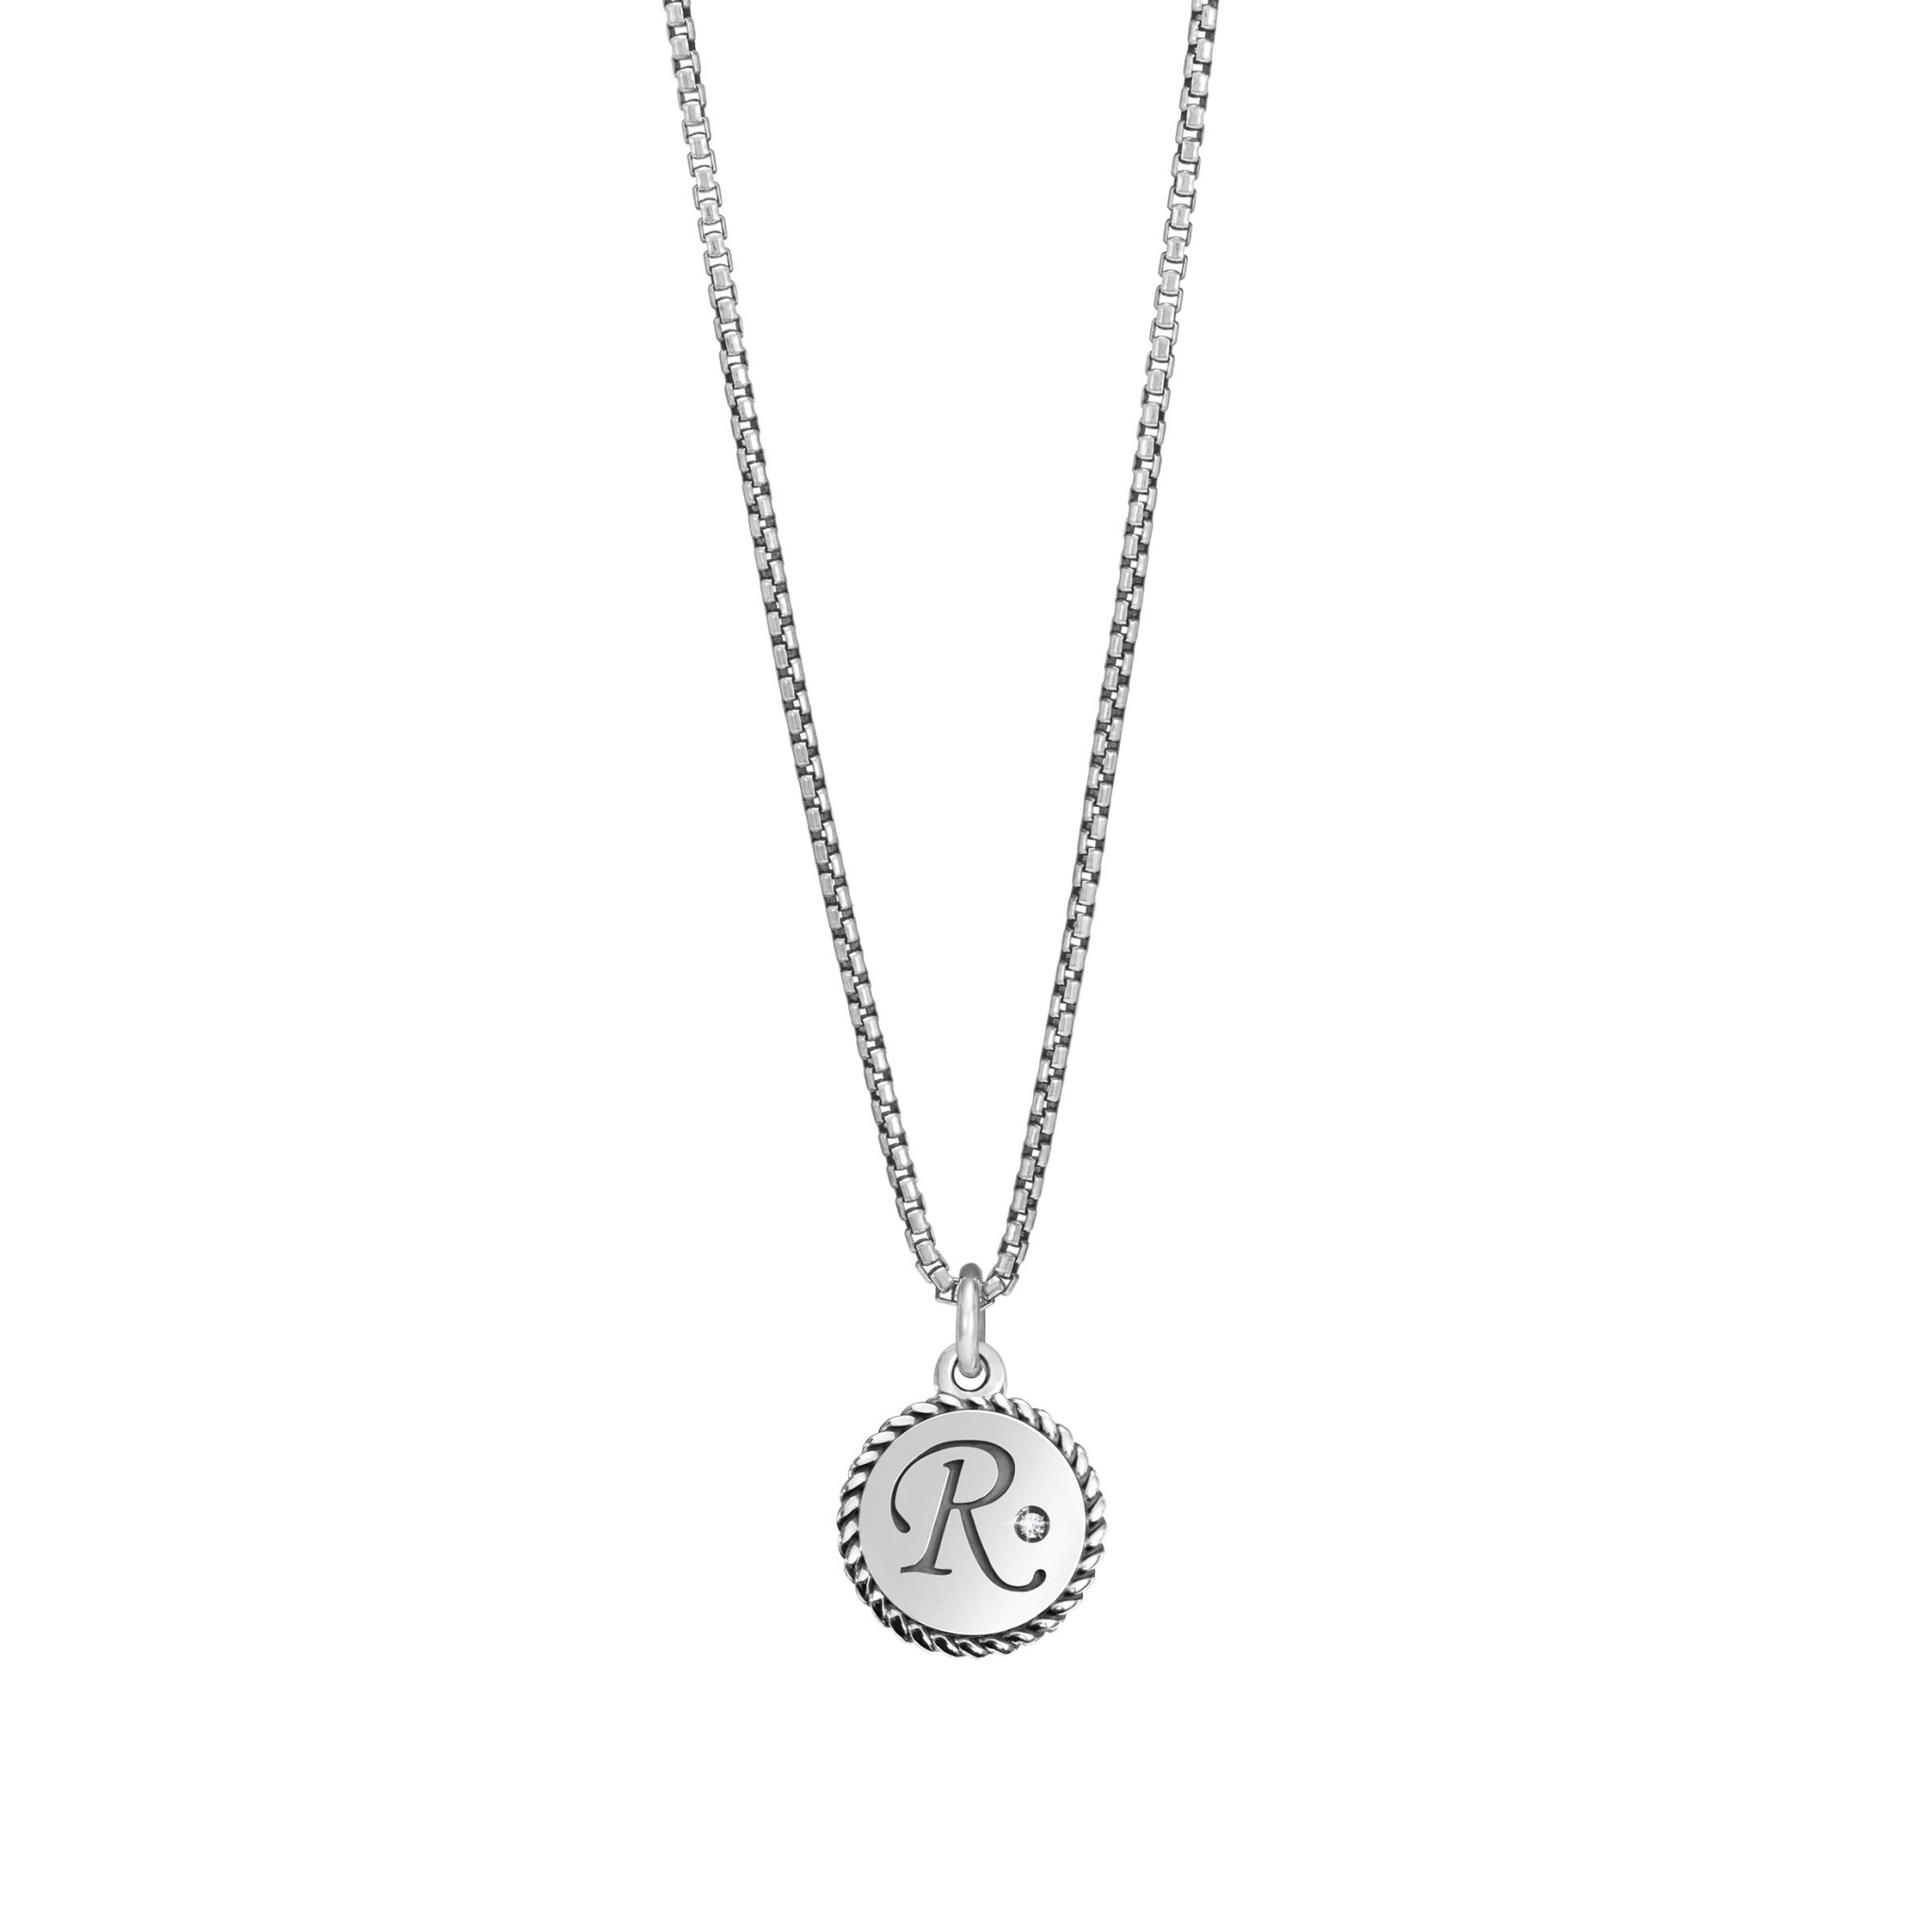 Necklace With Letter R In Silver And Gemstone Within Most Popular Letter P Alphabet Locket Element Necklaces (View 16 of 26)